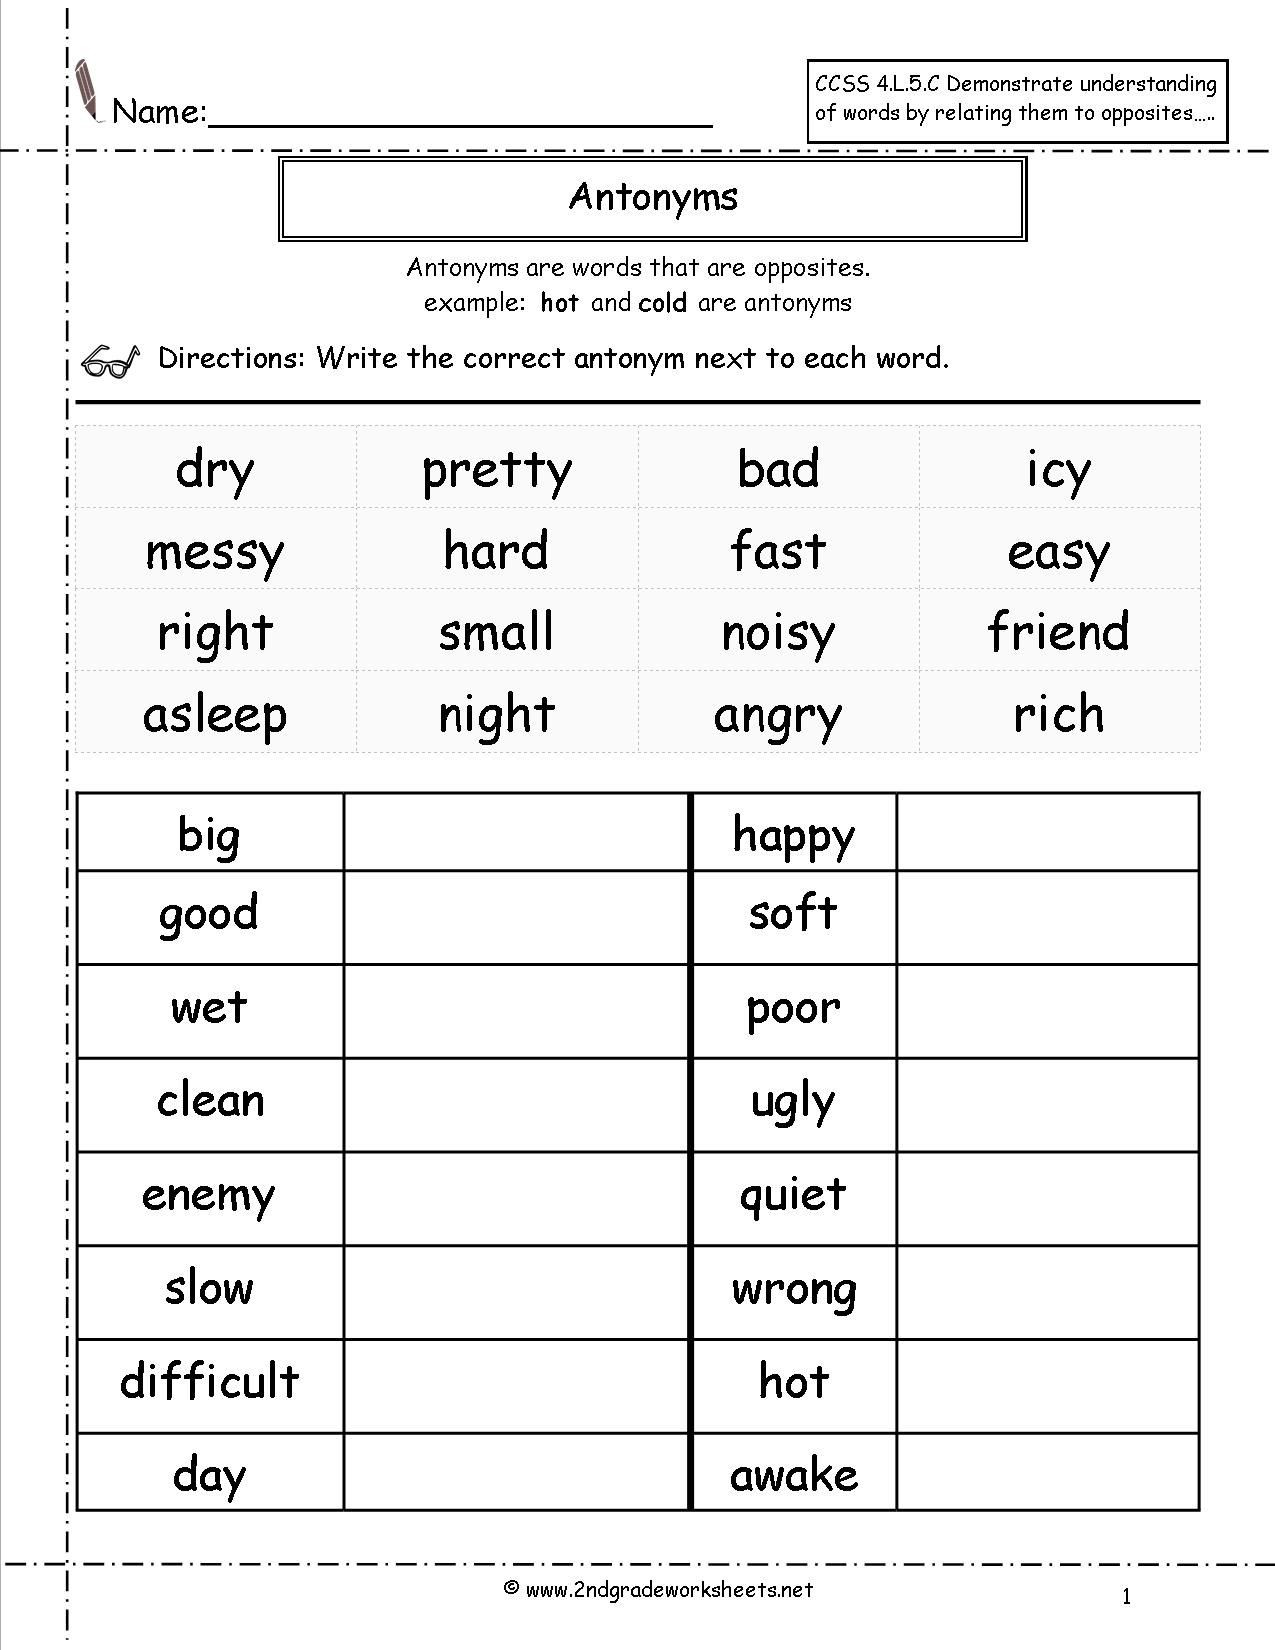 Synonyms Worksheet First Grade Antonyms Worksheet